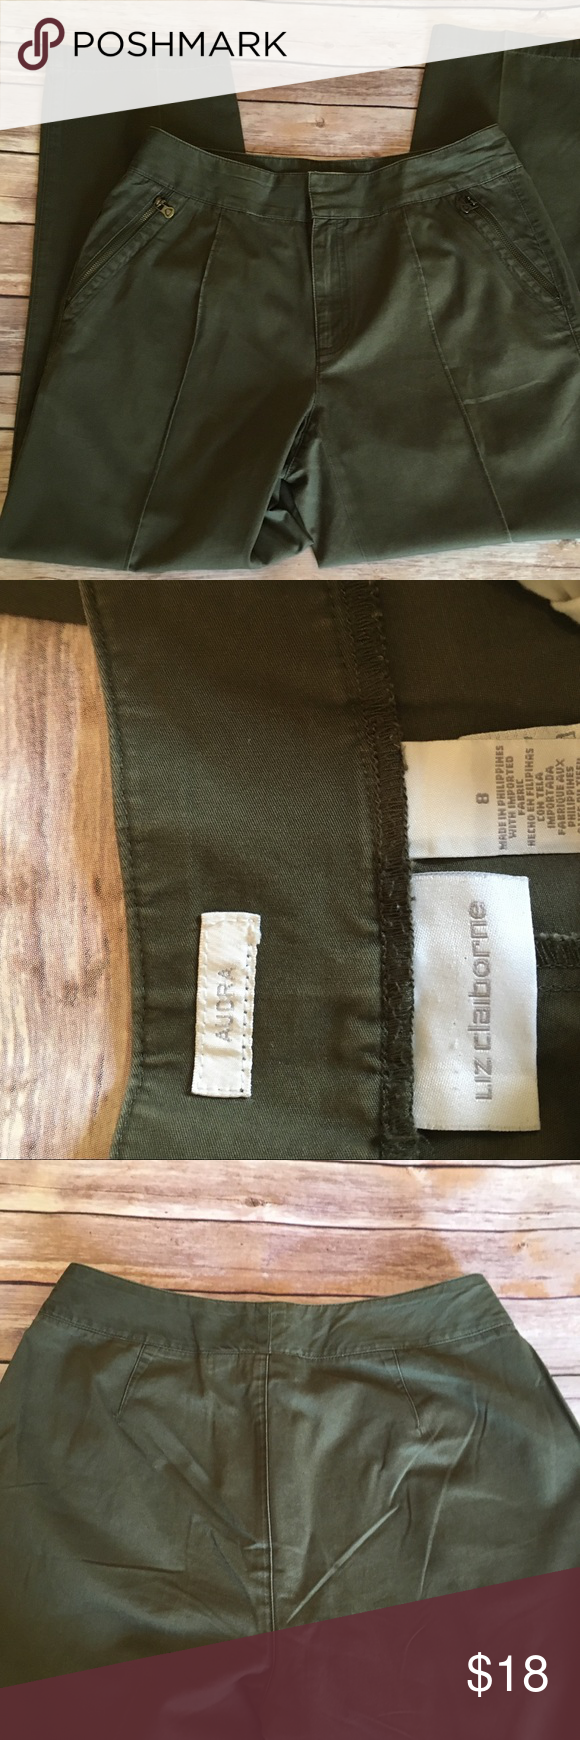 "Olive Green Liz Claiborne Pants Olive green pants. Size 8. Very comfortable and easy to care for. Great alternative to jeans.  100% cotton  Waist: 15.5"" Hip: 19"" Rise: 10"" Inseam: 27"" Total length: 37"" Leg opening: 7.5  Bn1 Item# P08 Liz Claiborne Pants Skinny"